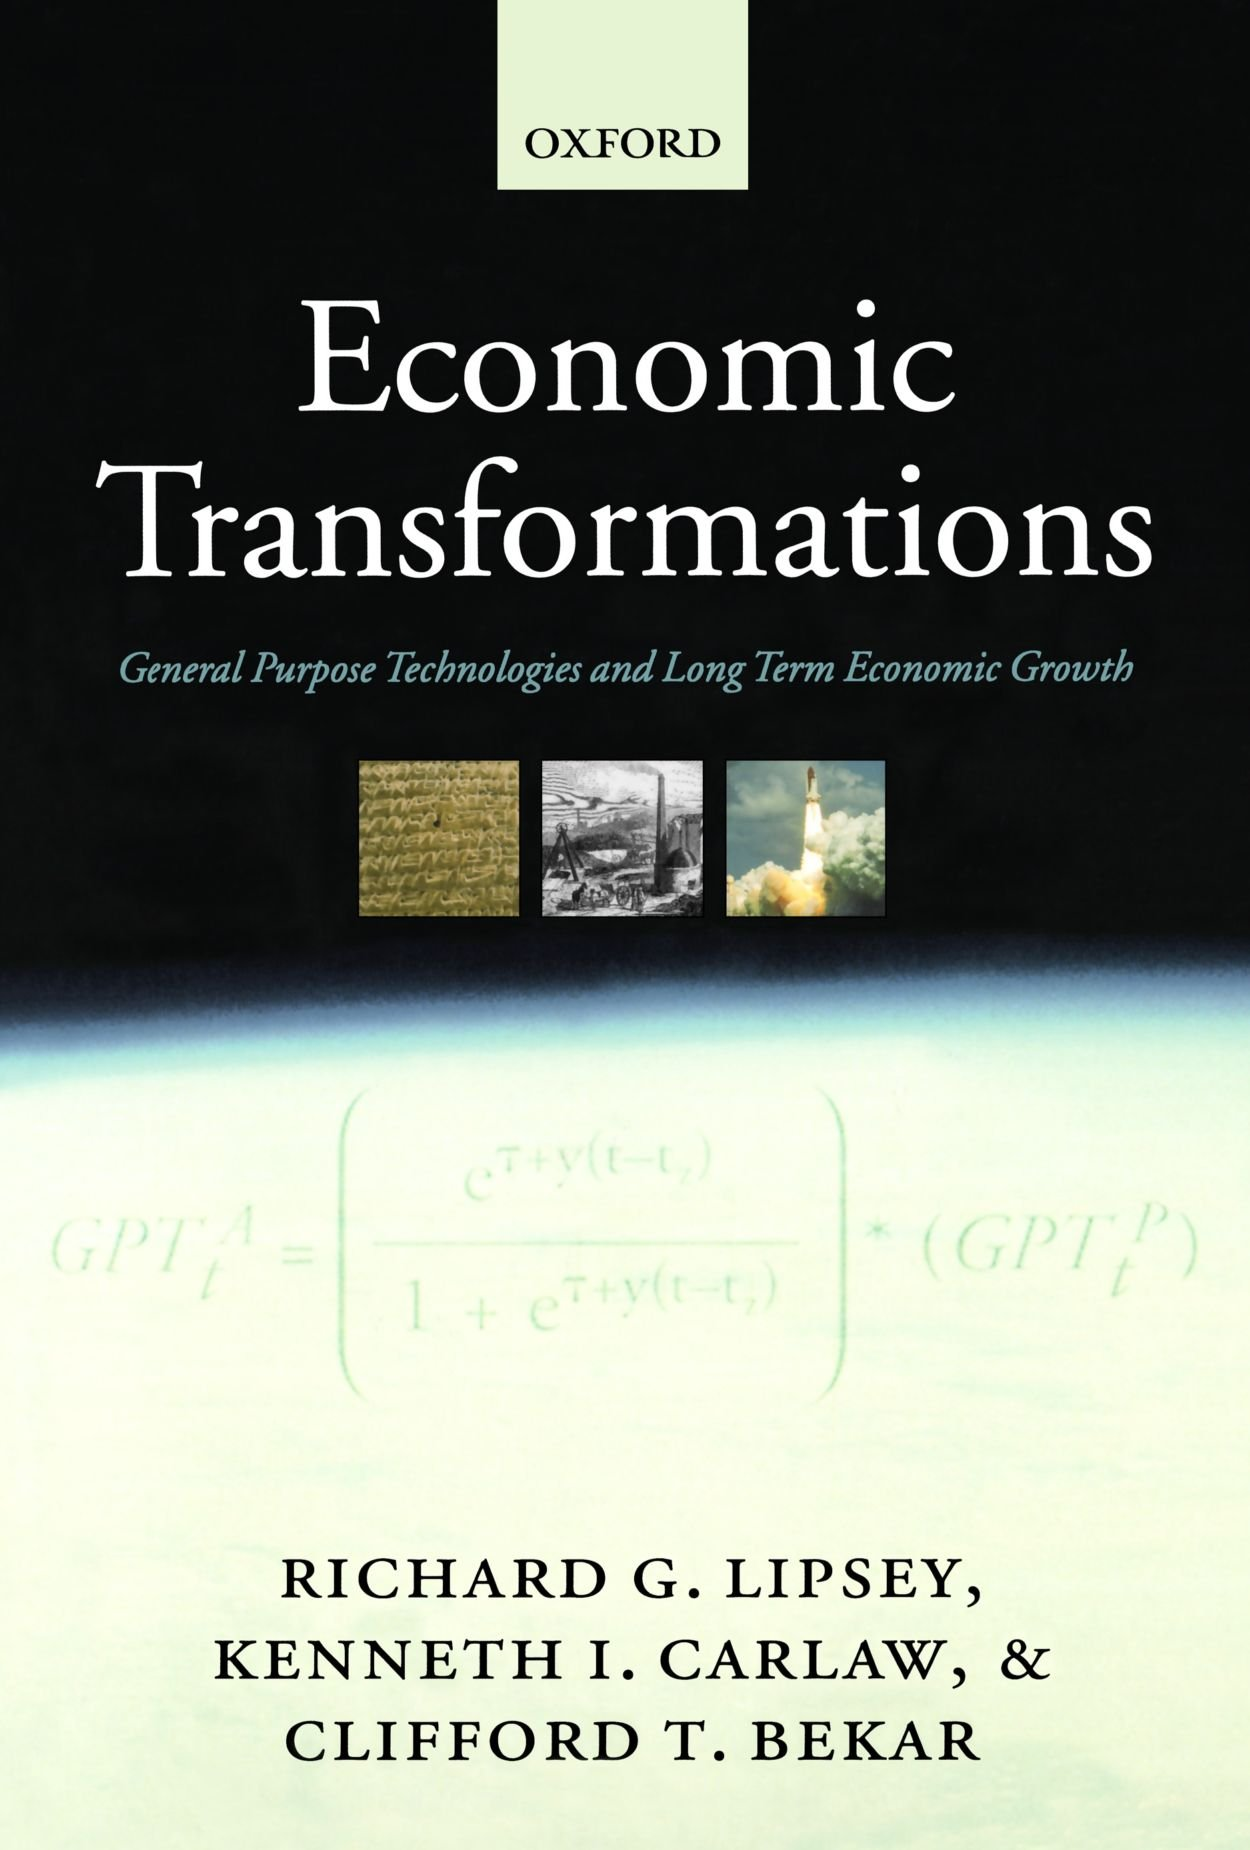 Economic Transformations: General Purpose Technologies and Long Term Economic Growth by Richard G Lipsey